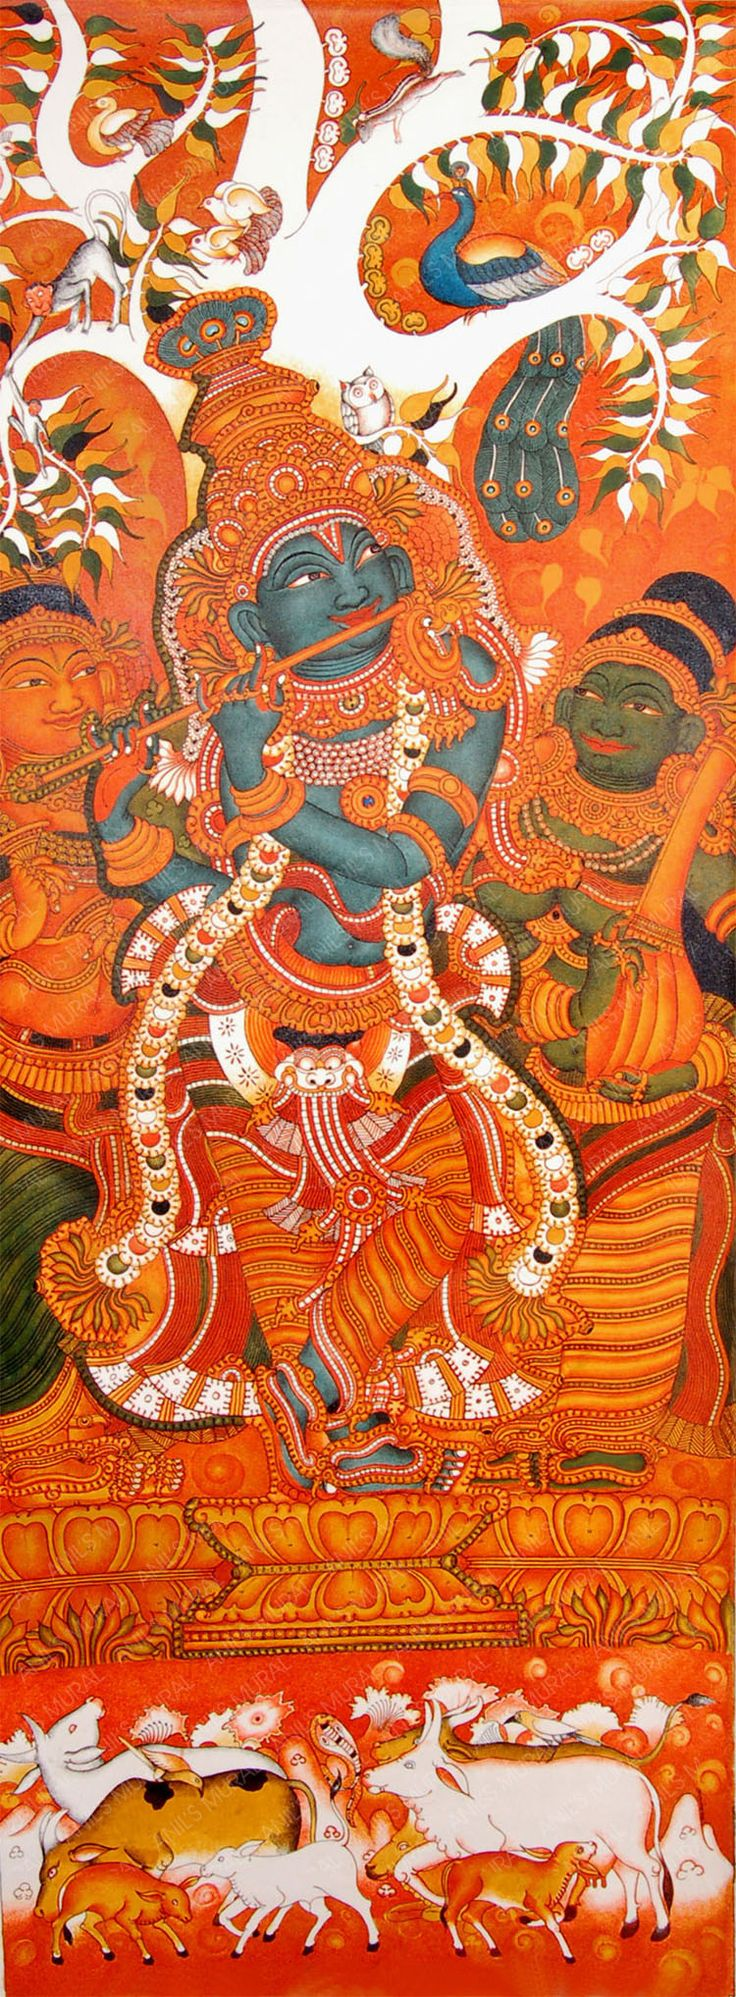 437 best kerala mural images on pinterest mural painting for Mural kerala